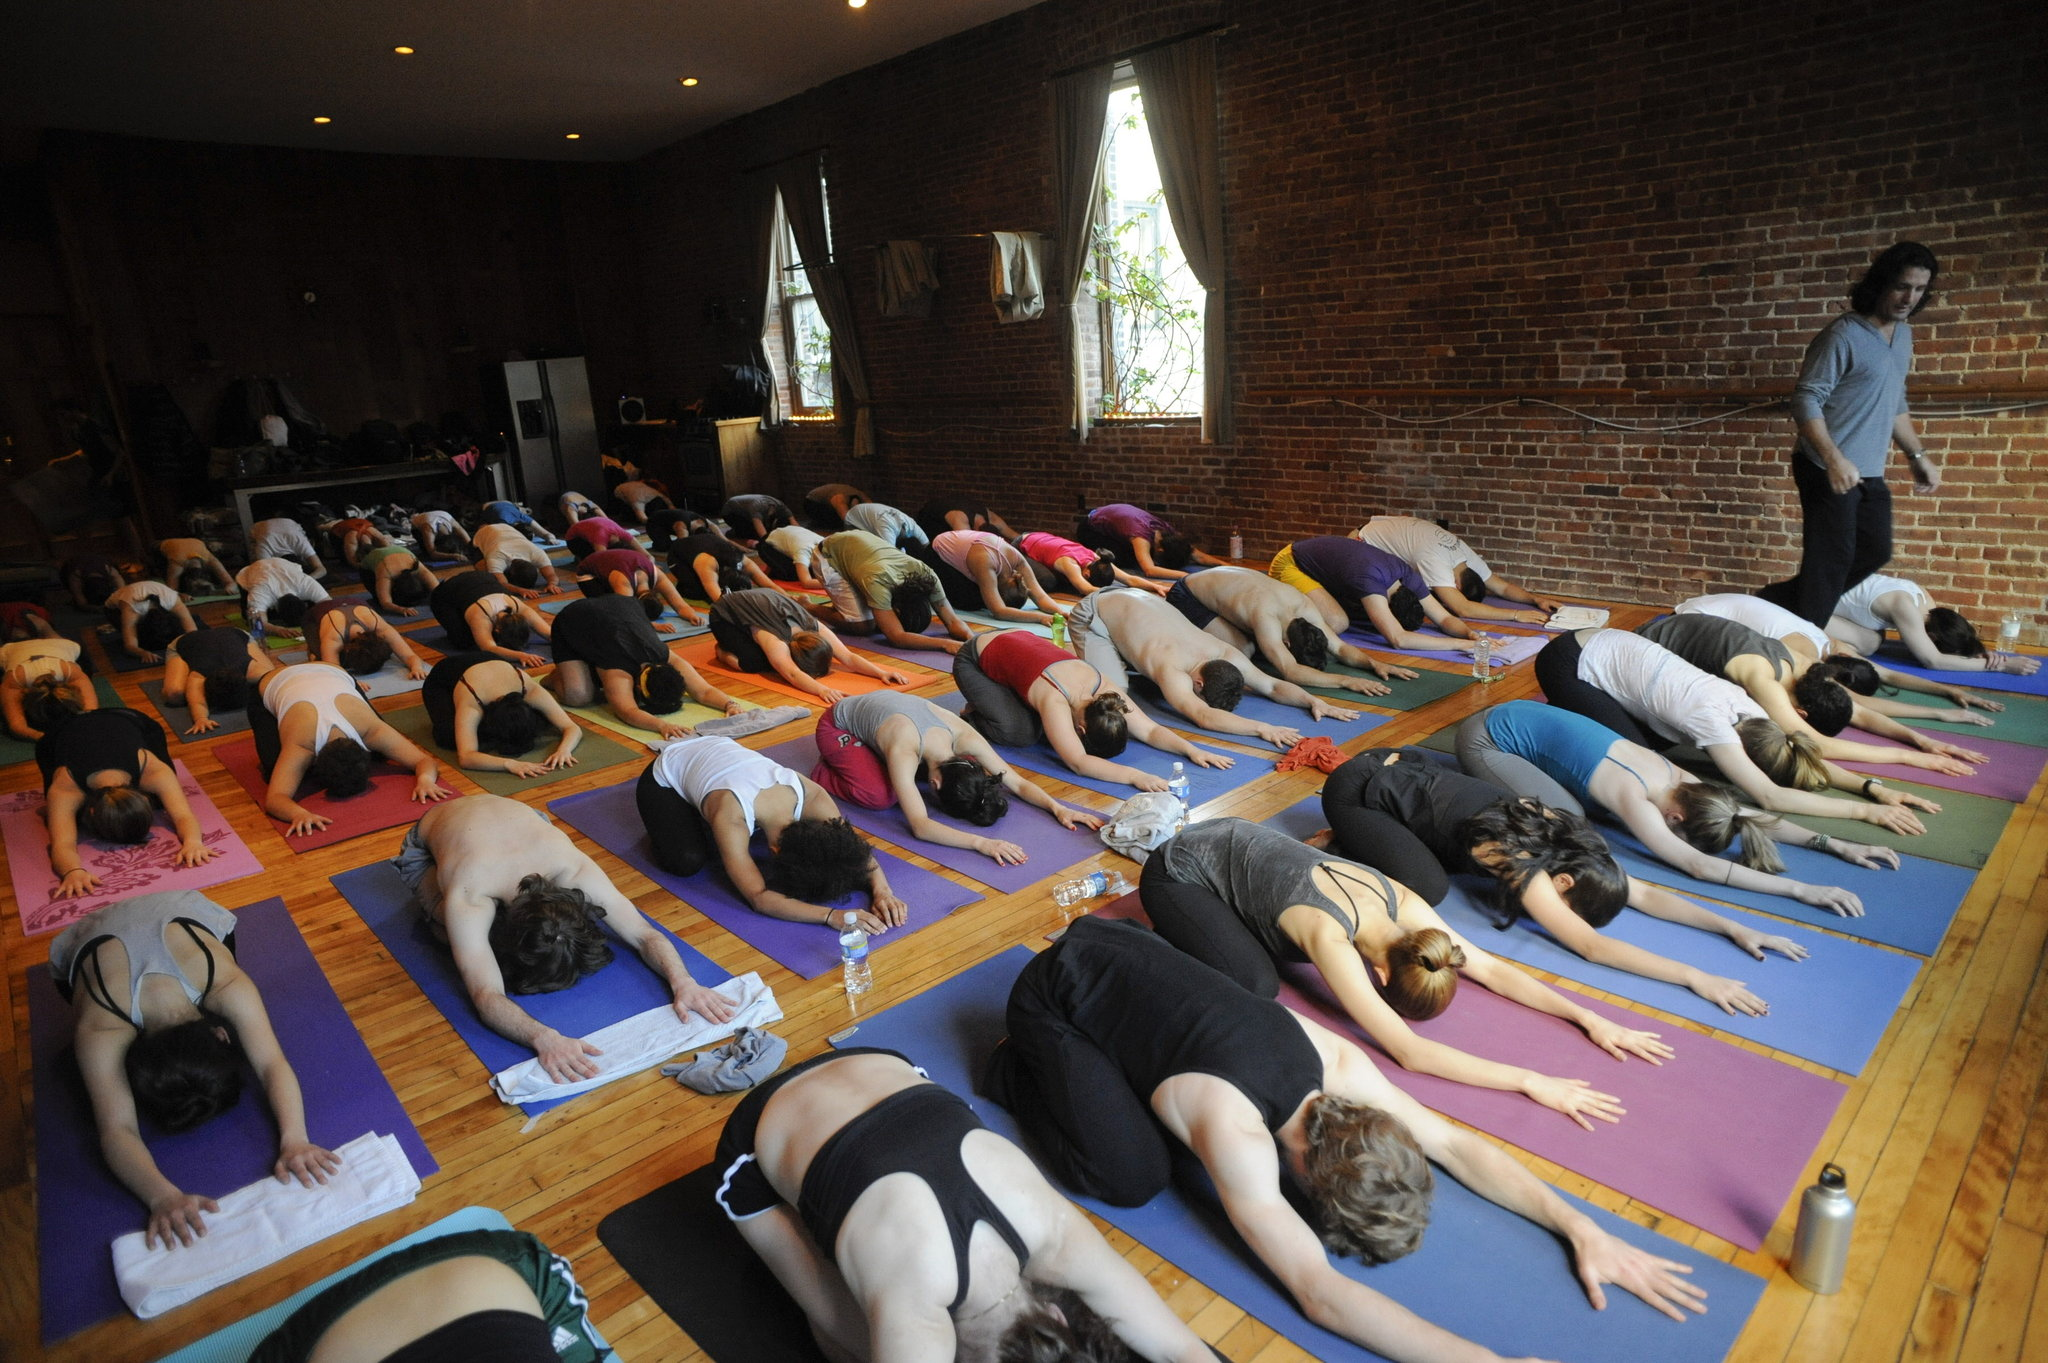 A former student of Bikram Choudhury, Greg Gumucio made a name for himself with Yoga for the People. But now, he's fallen from grace as well.